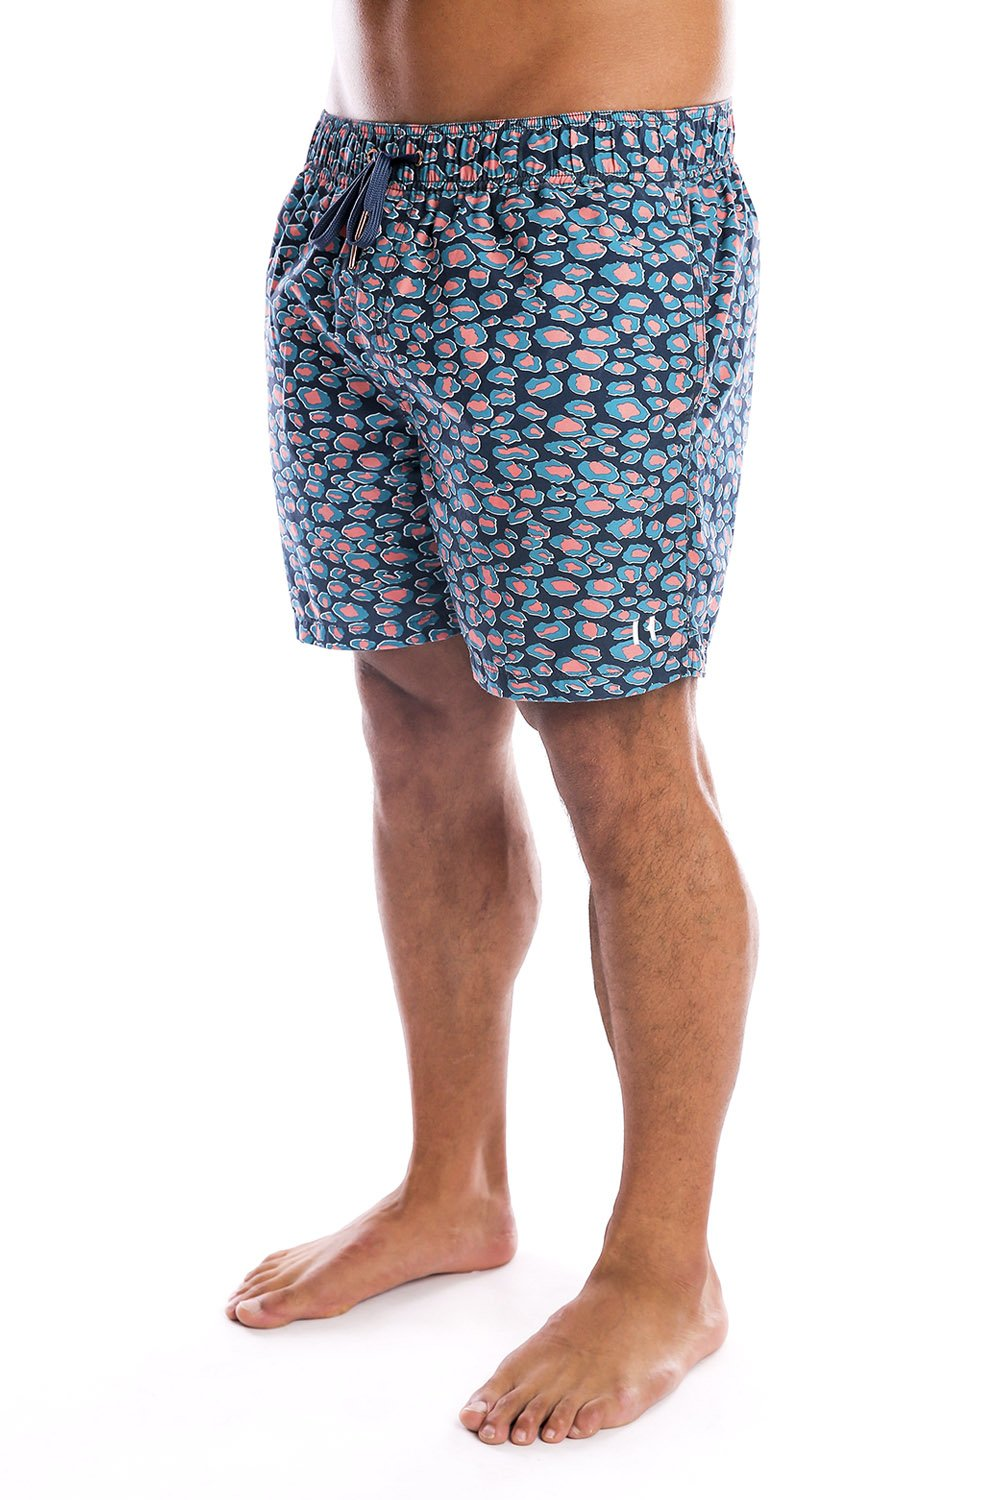 Leopard Swim Shorts - Adult - Modern Tribe, LLC